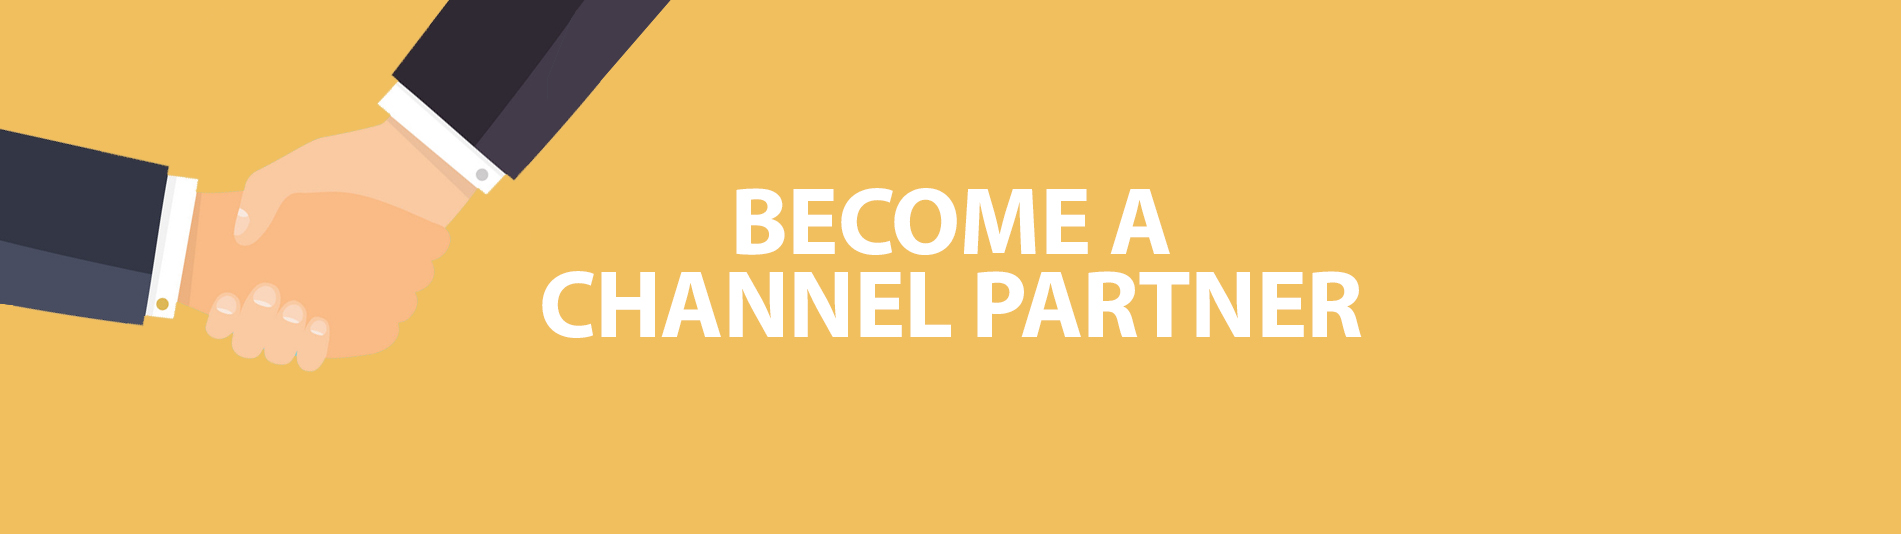 Become Channel partner